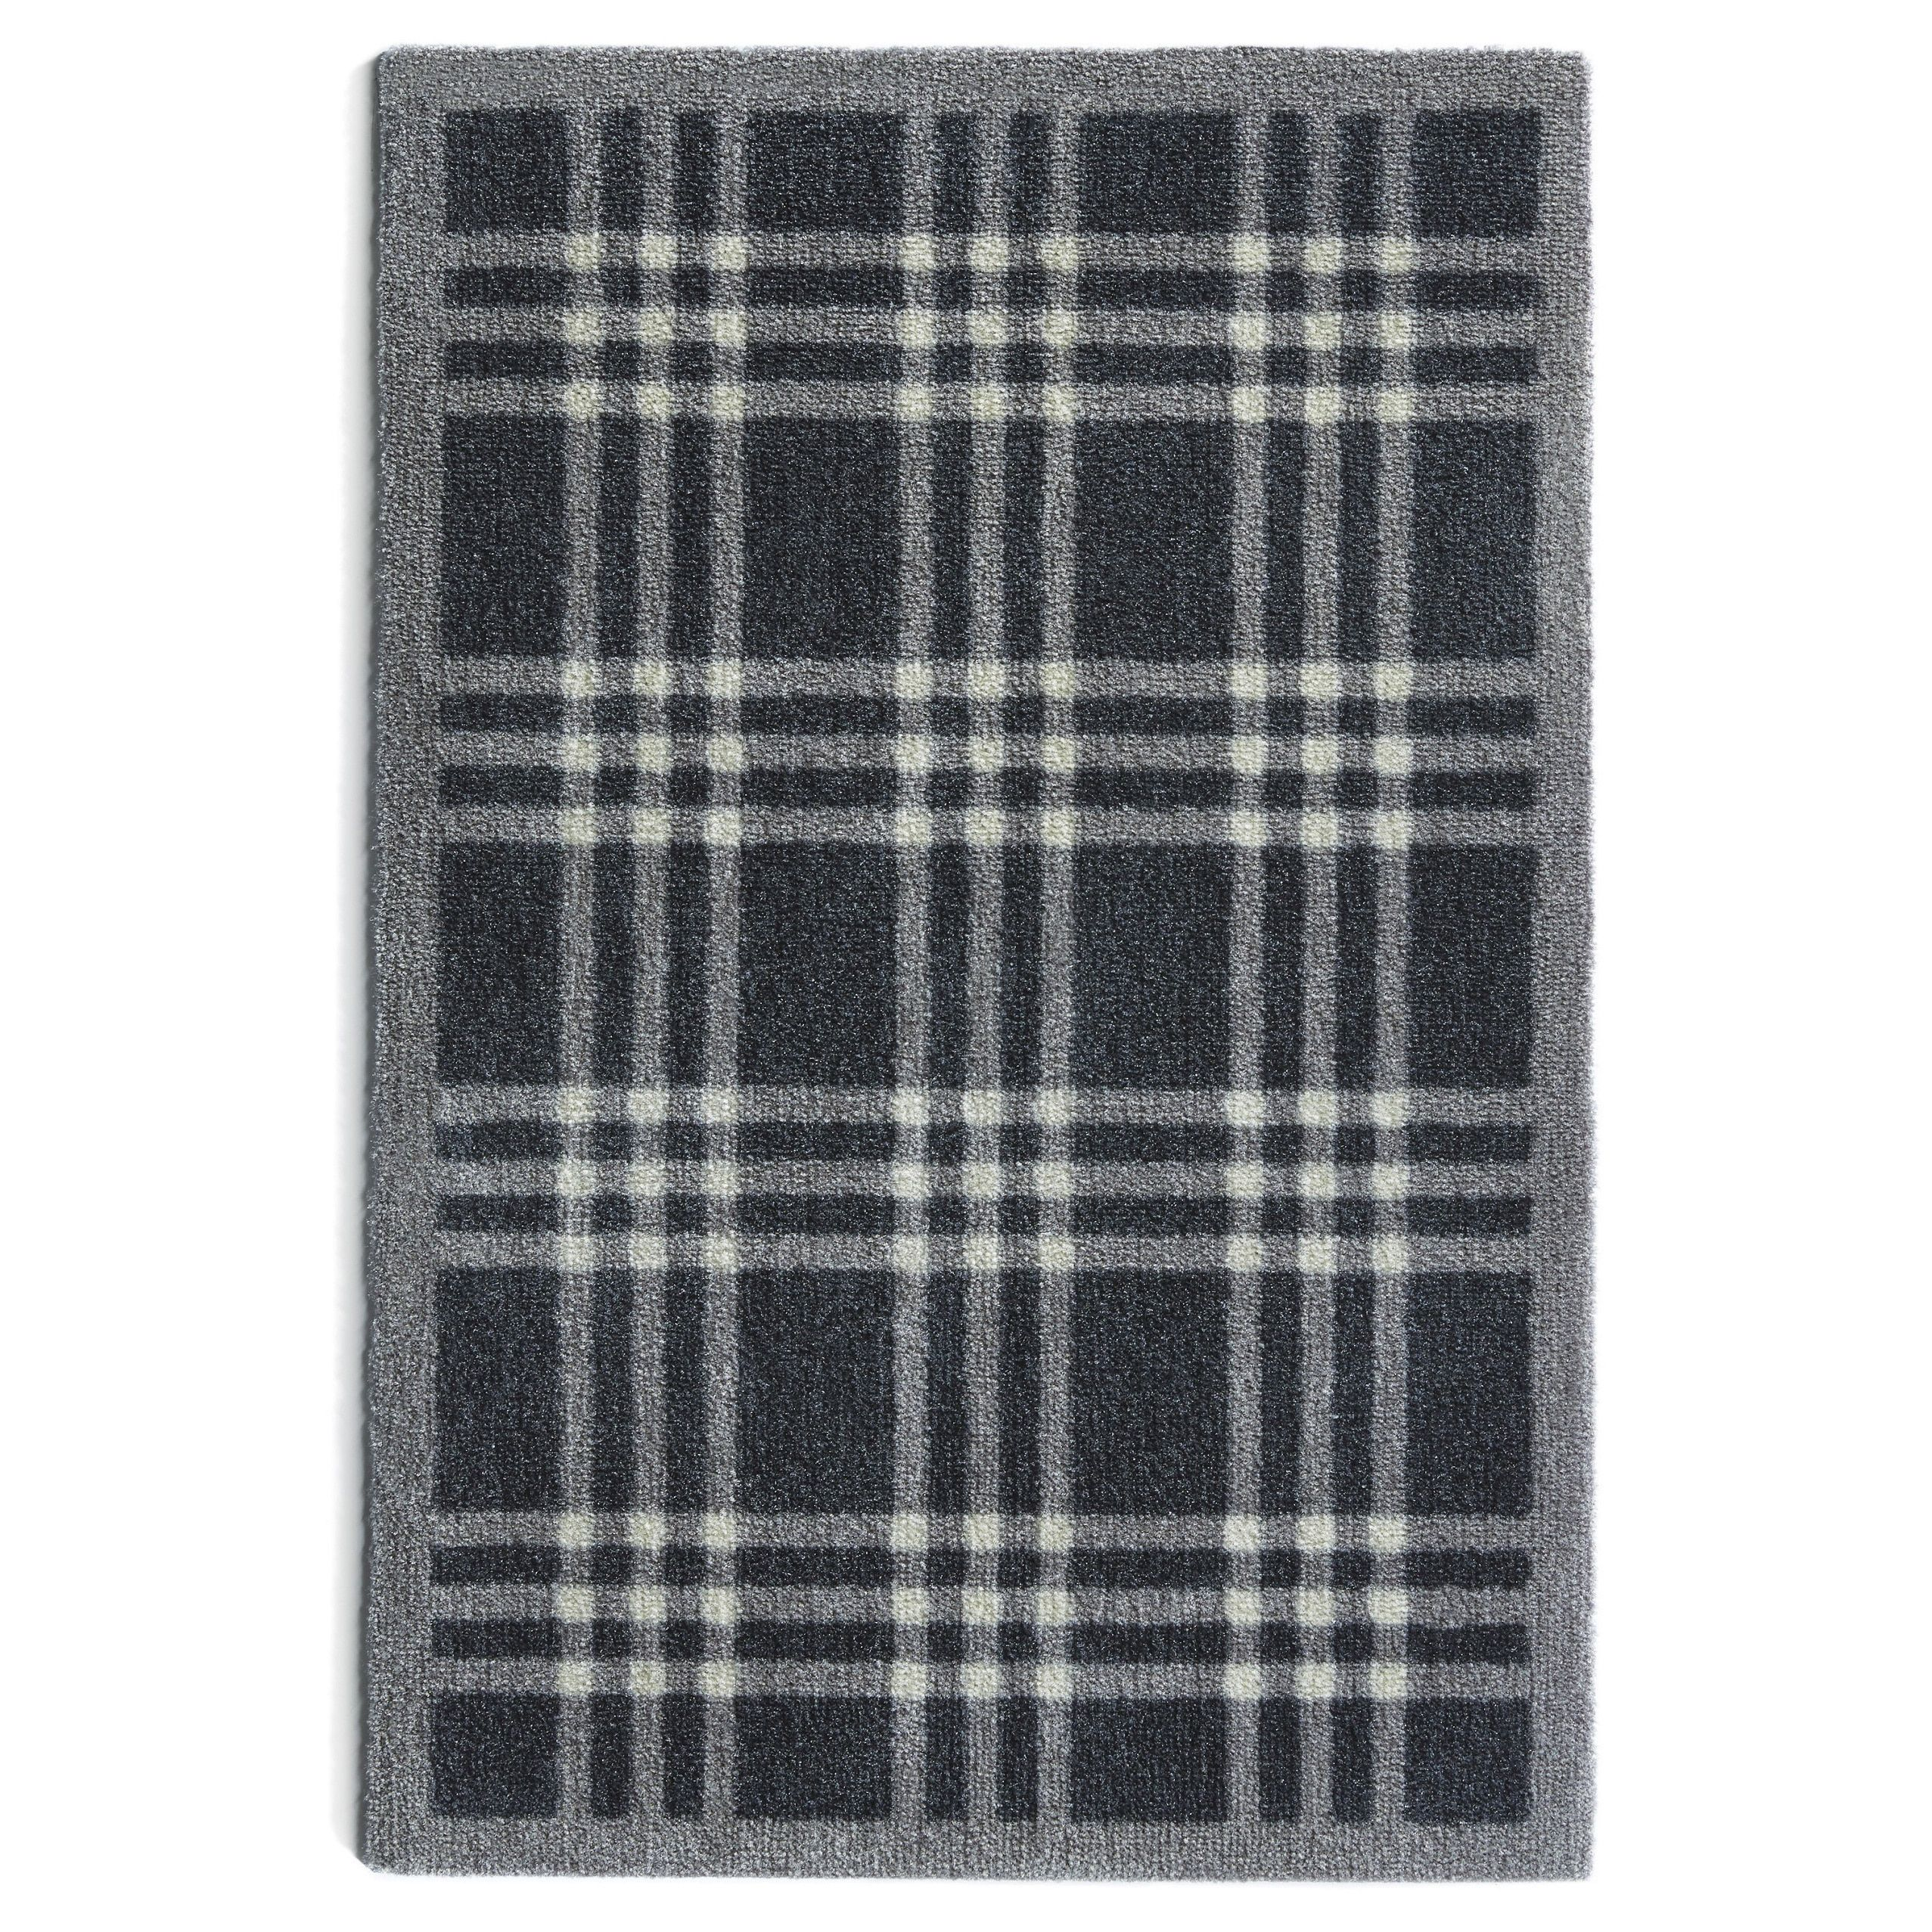 Muddle Mat Multicolored /Rubber Washable Accent Rug